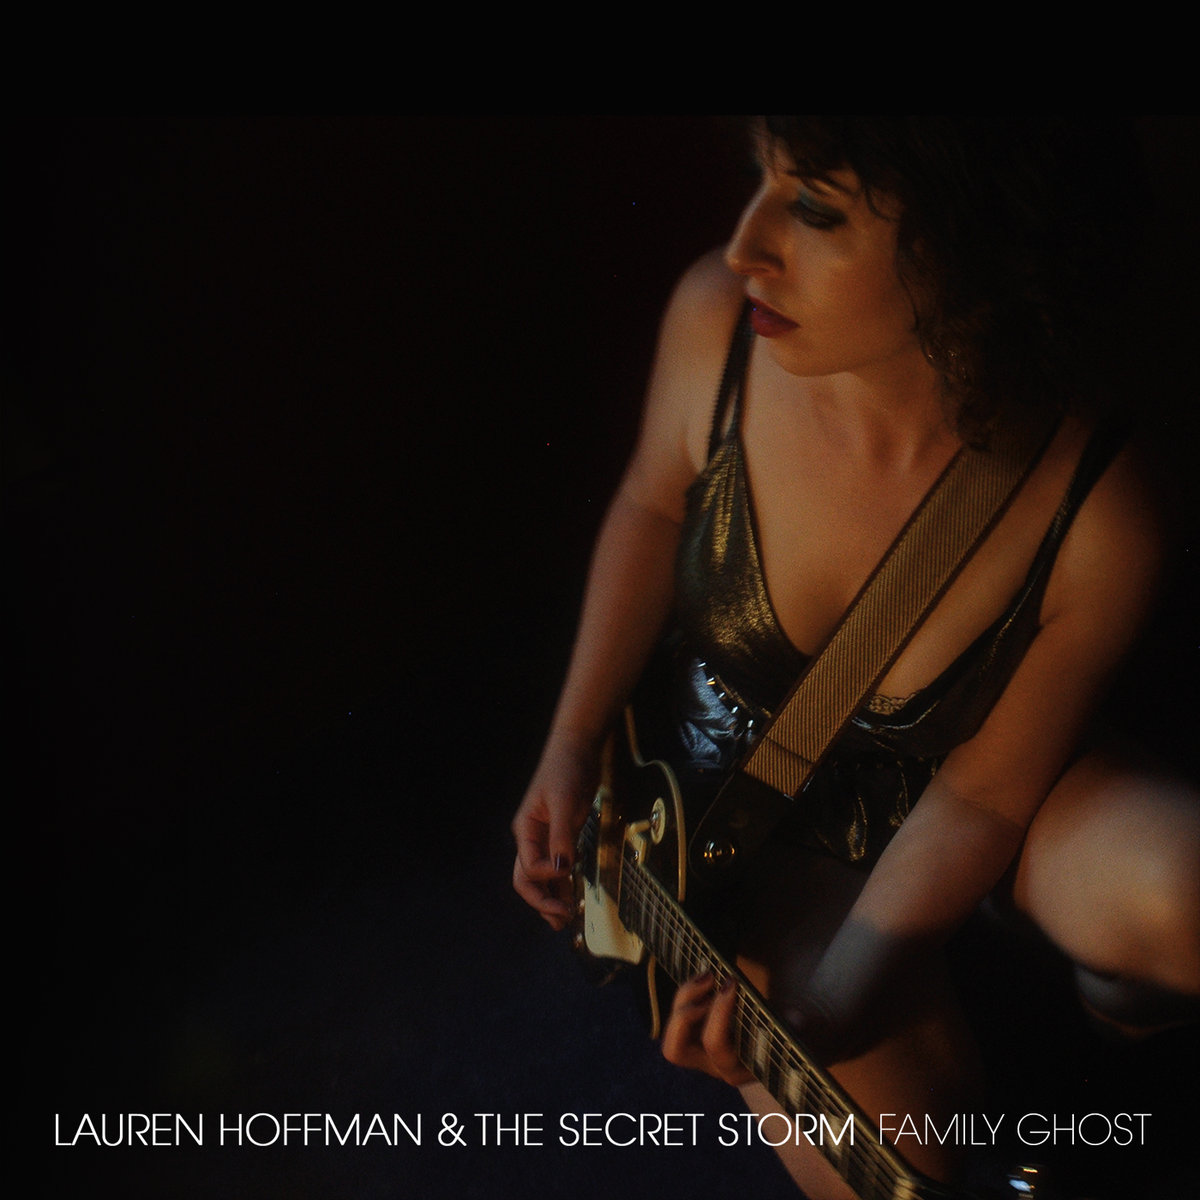 Lauren Hoffman & The Secret Storm